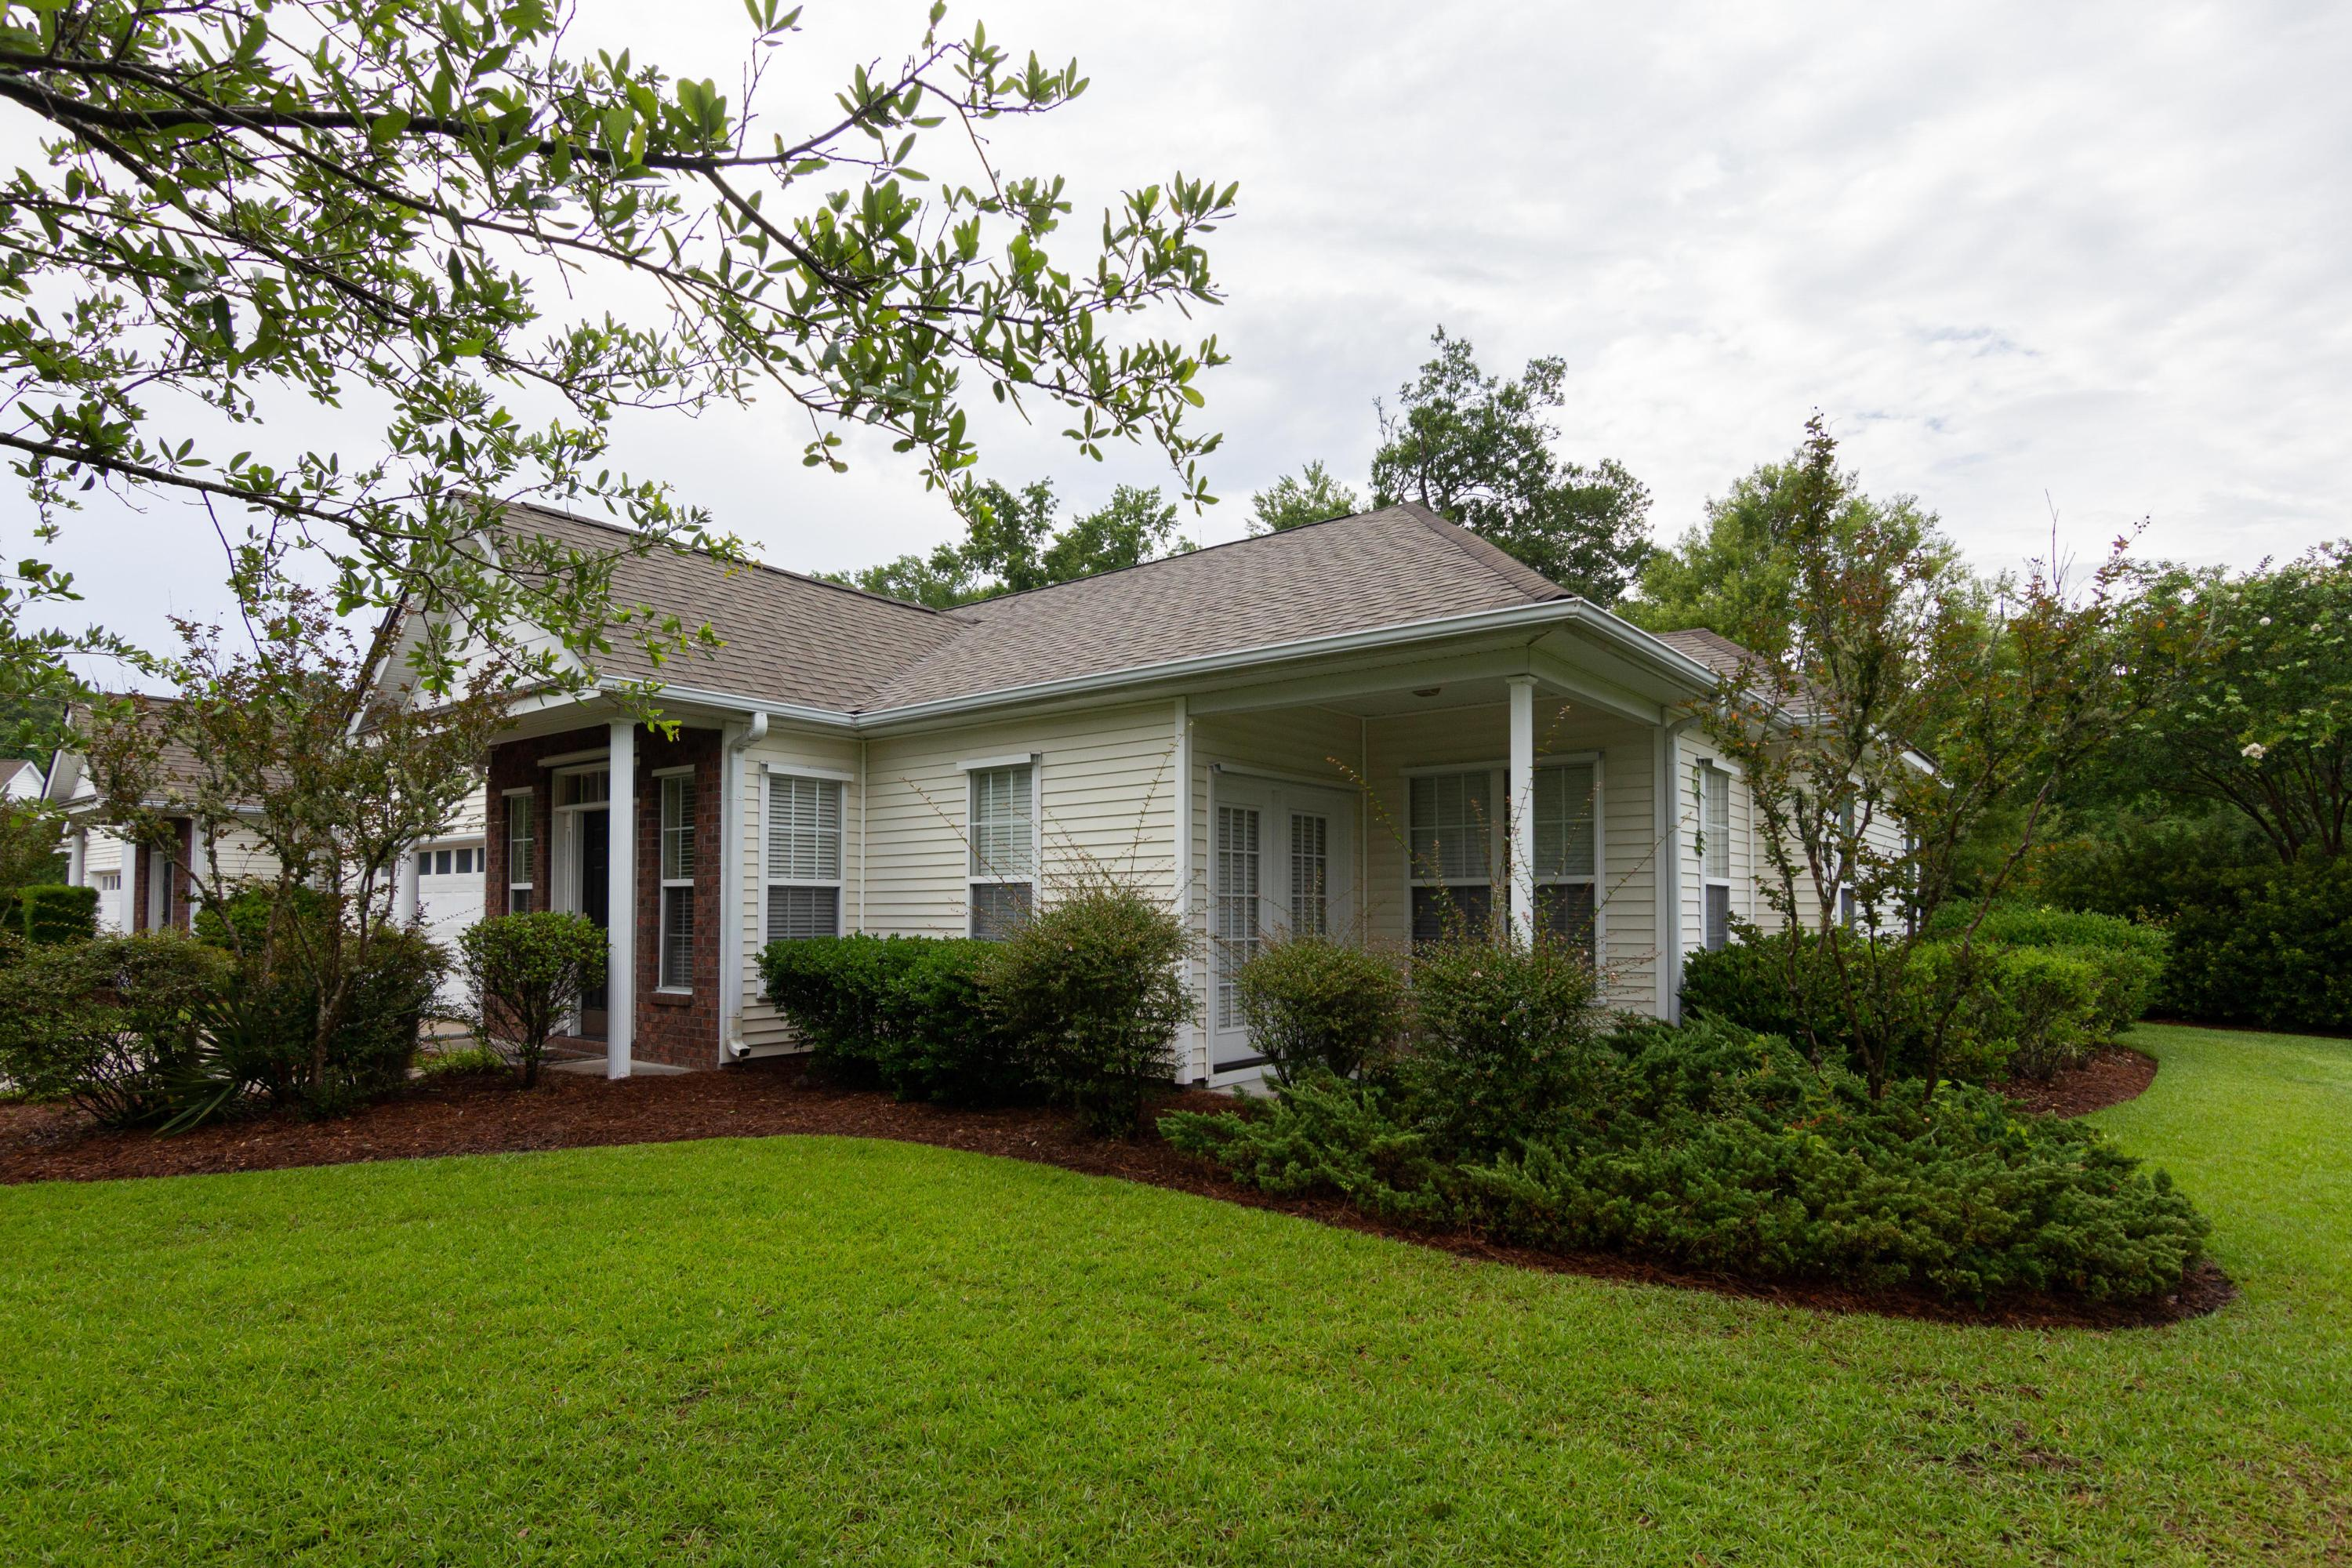 Coosaw Commons Homes For Sale - 8703 Grassy Oak, North Charleston, SC - 2